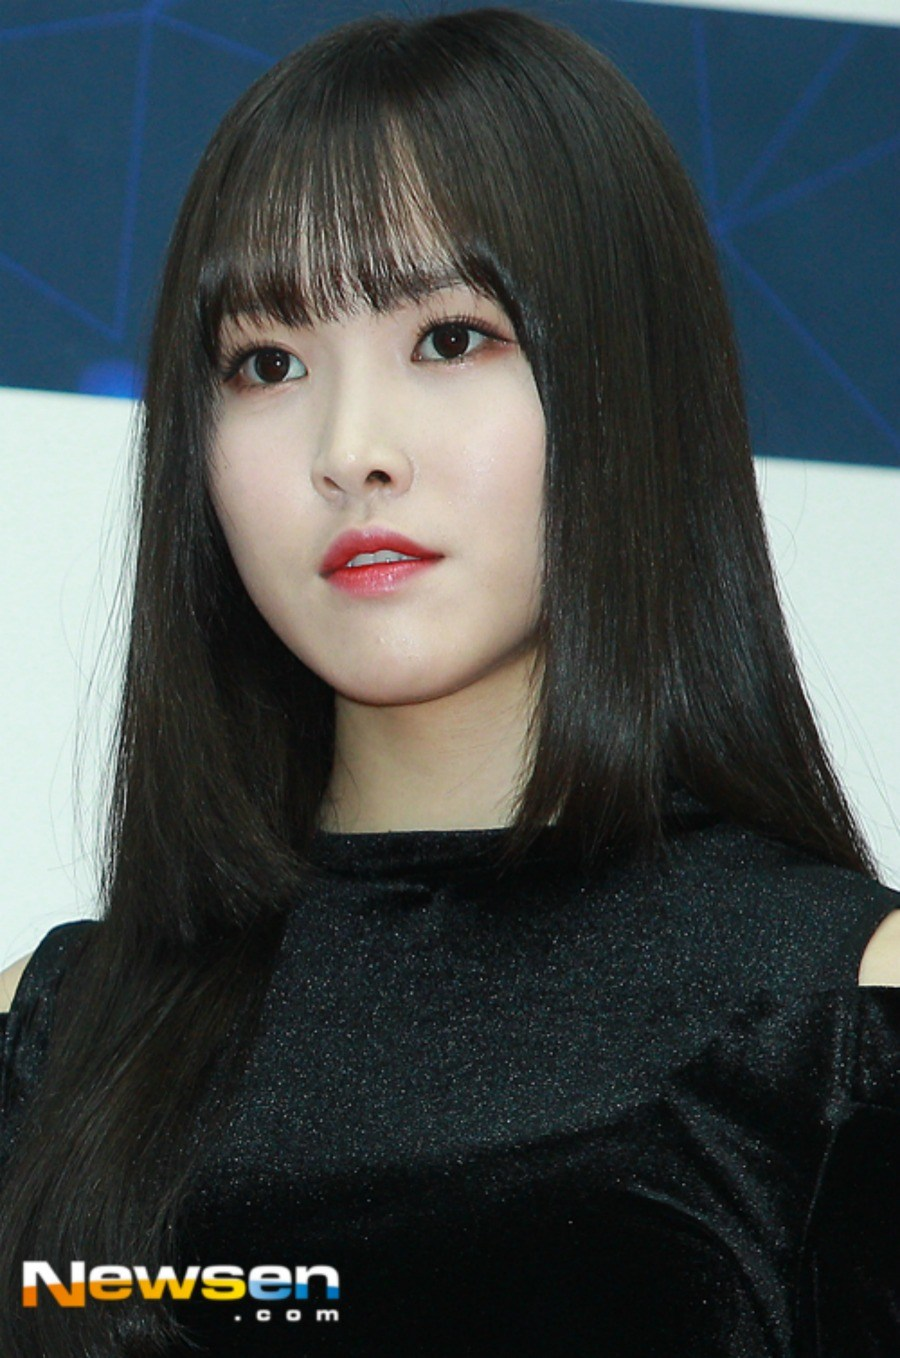 Gfriend Finally Reveals Comeback Hairstyles After Hiding